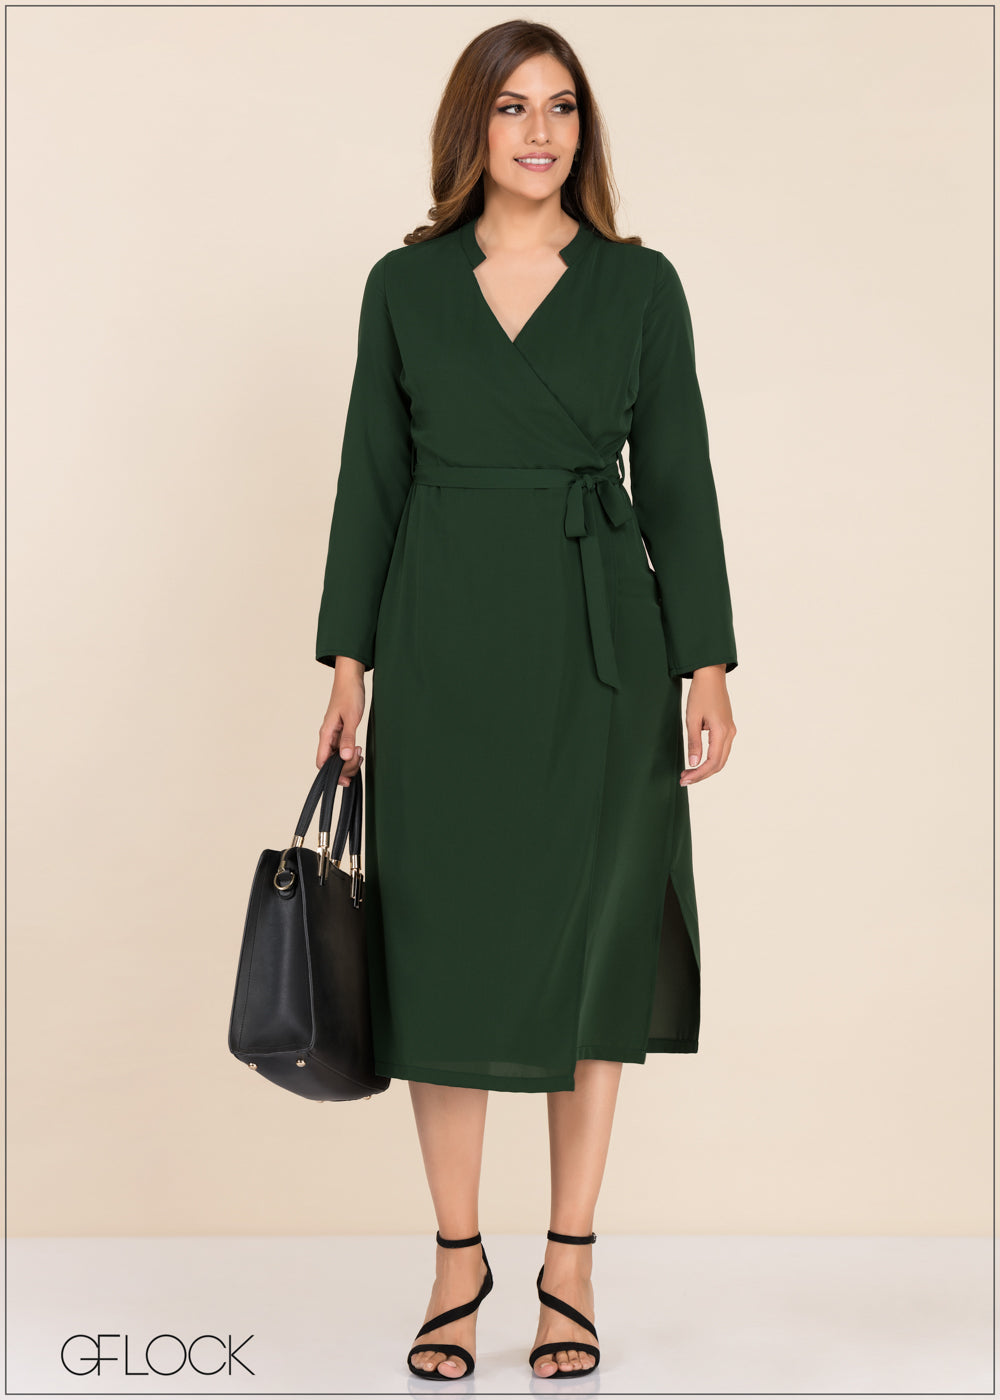 Wrap Waist Belted Dress - GFLOCK.LK